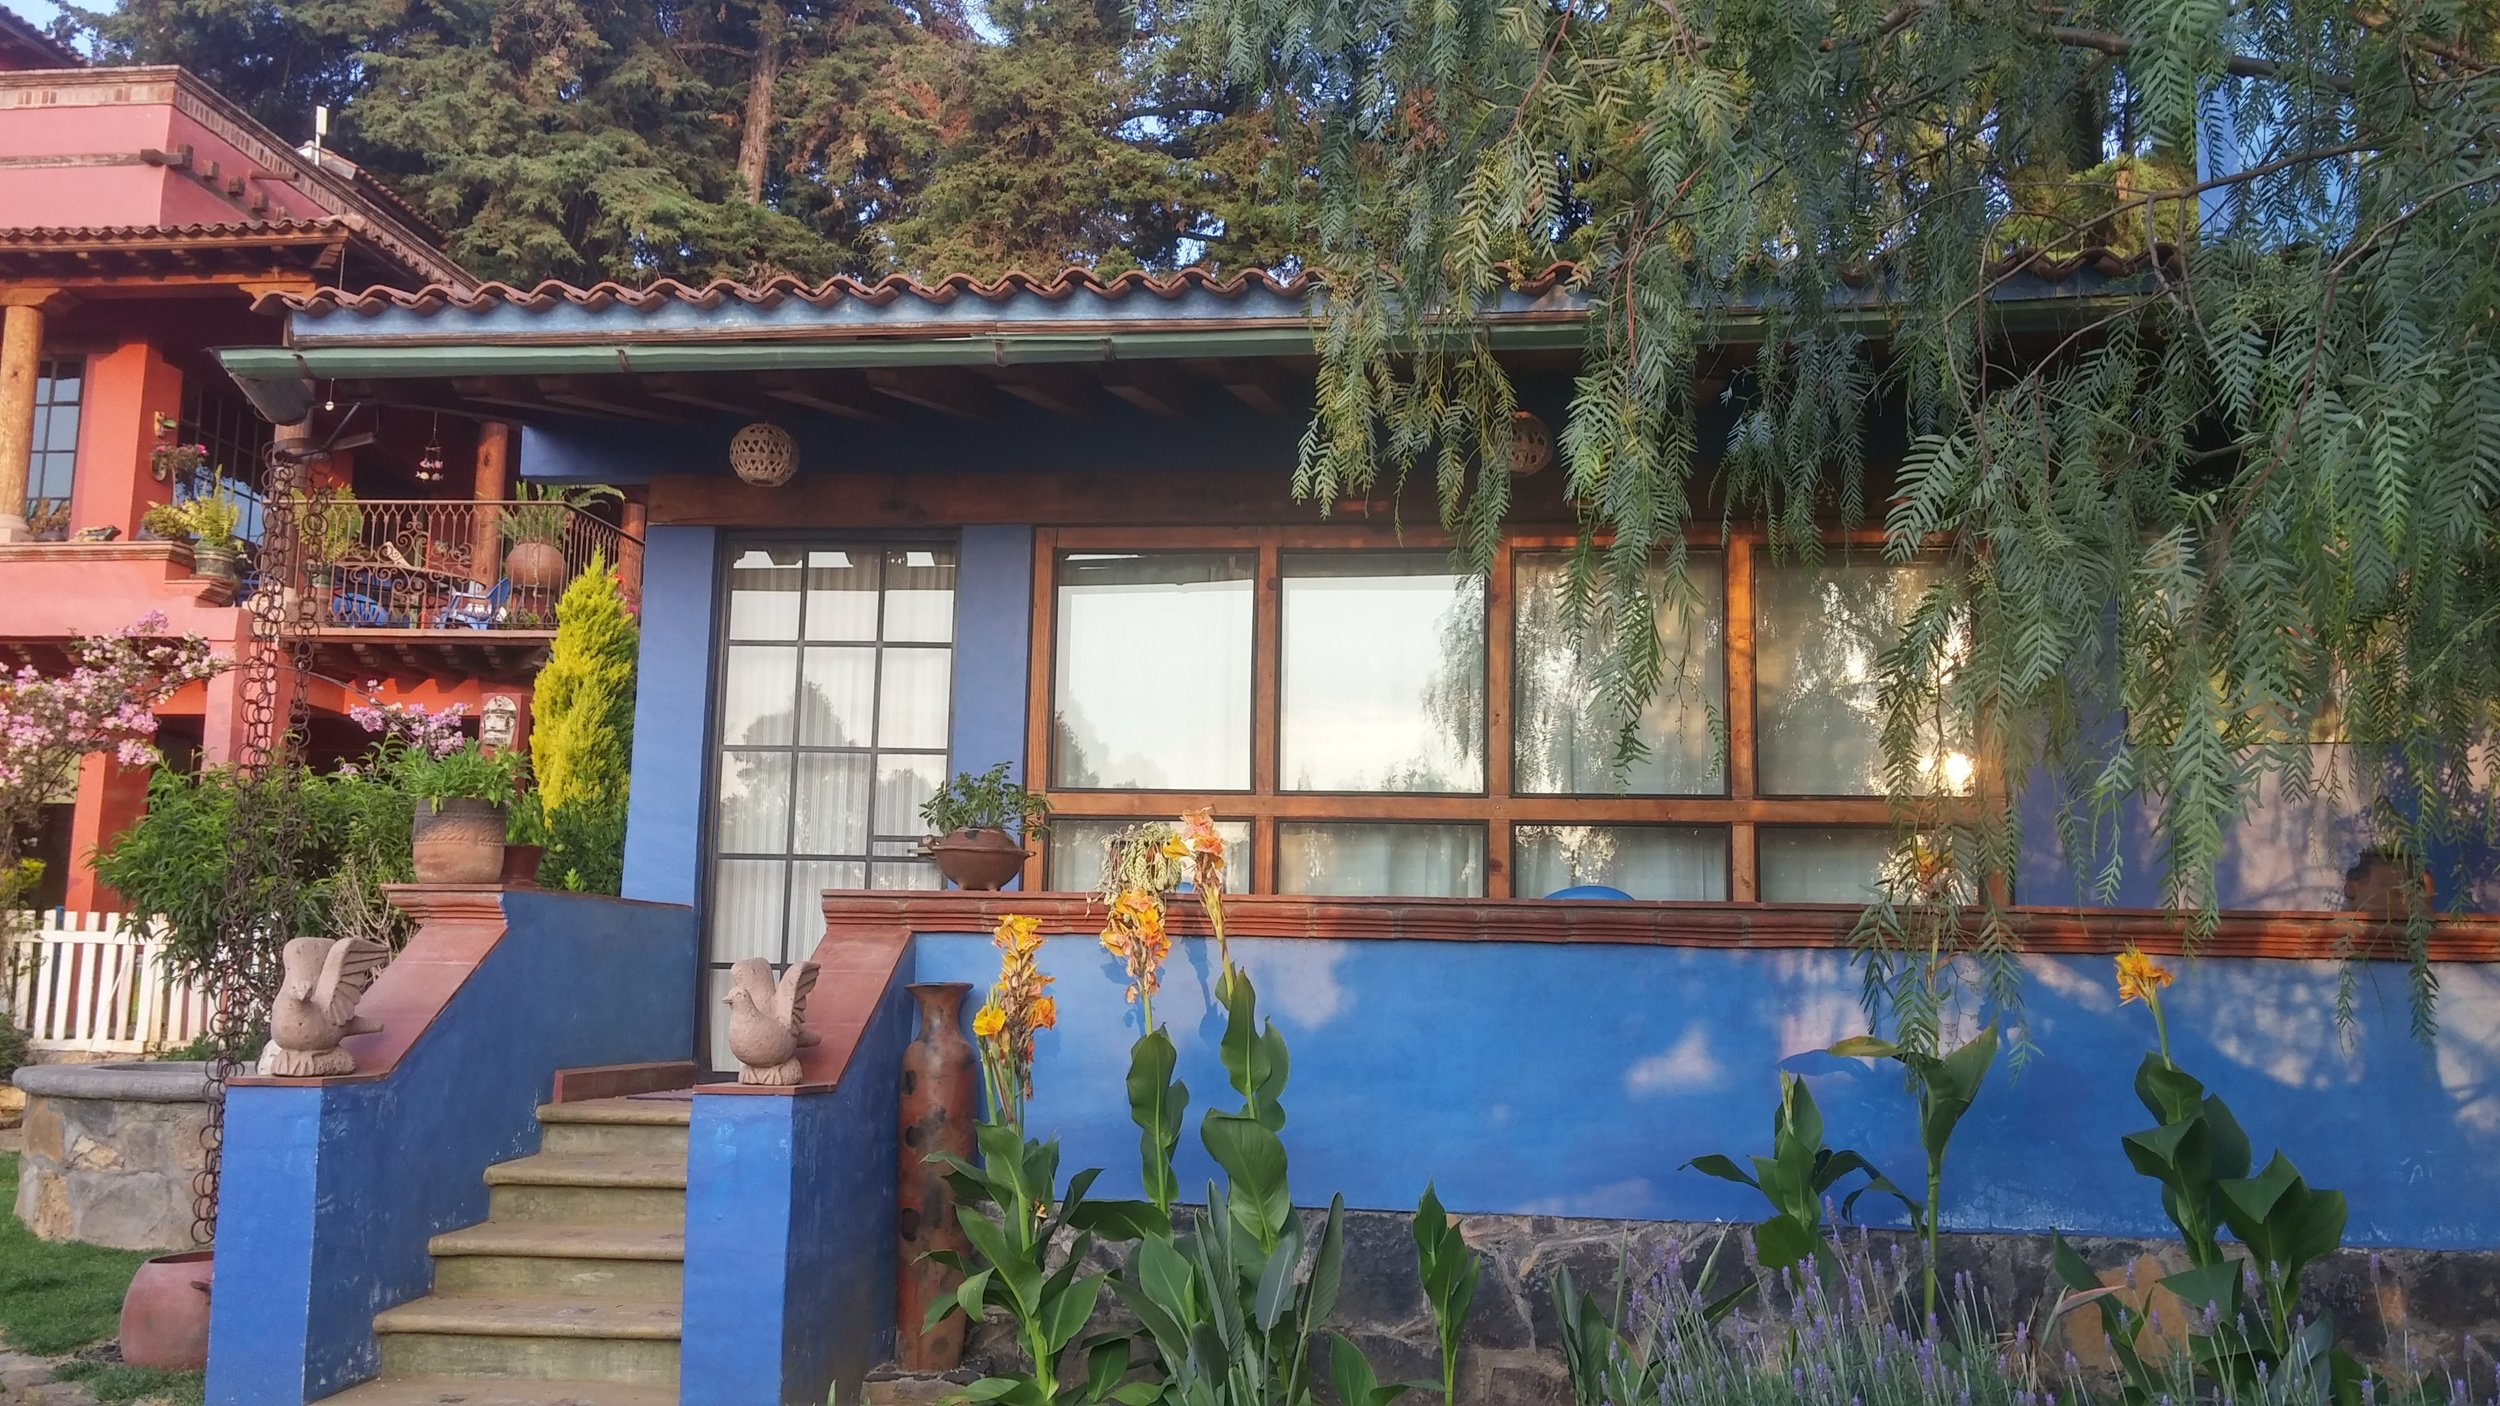 """Our home away from home, the """"Blue Casita."""""""